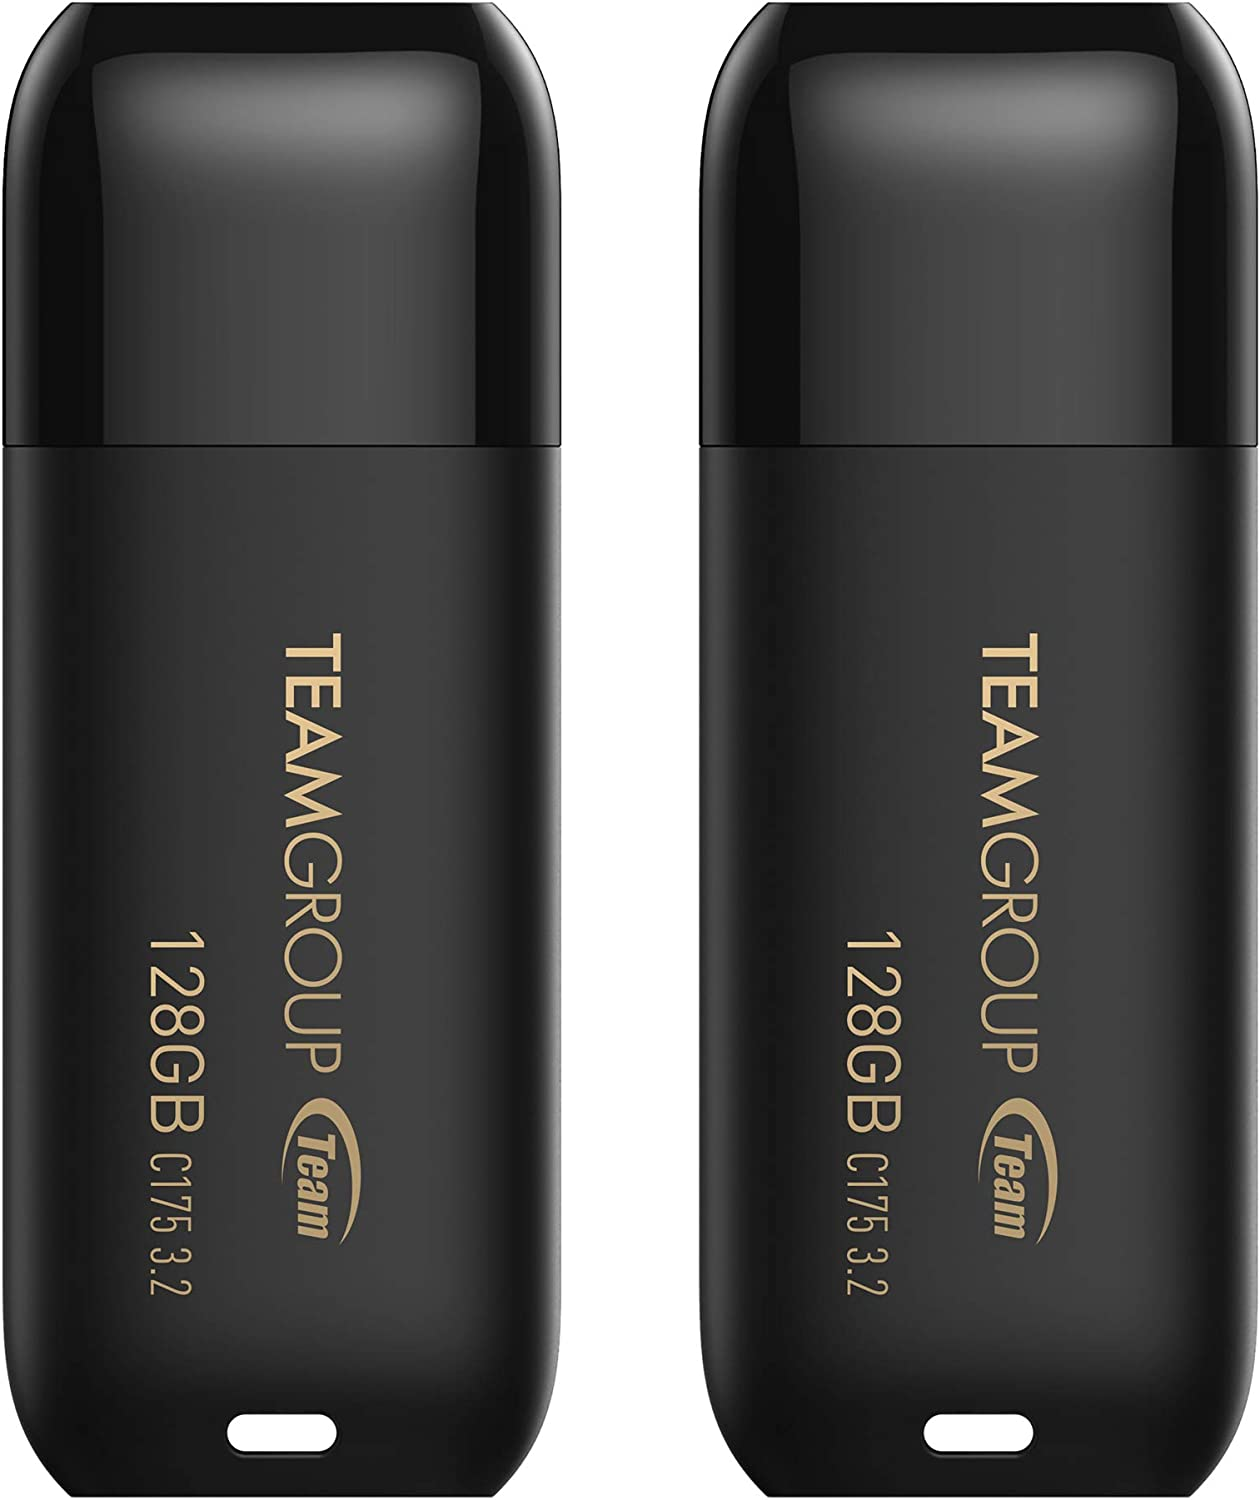 TEAMGROUP C175 128GB 2 Pack USB 3.2 Gen 1 (USB 3.1/3.0) USB Flash Thumb Drive, External Data Storage Memory Stick Compatible with Computer/Laptop TC1753128GB22 (Black) (128G 2-Pack)